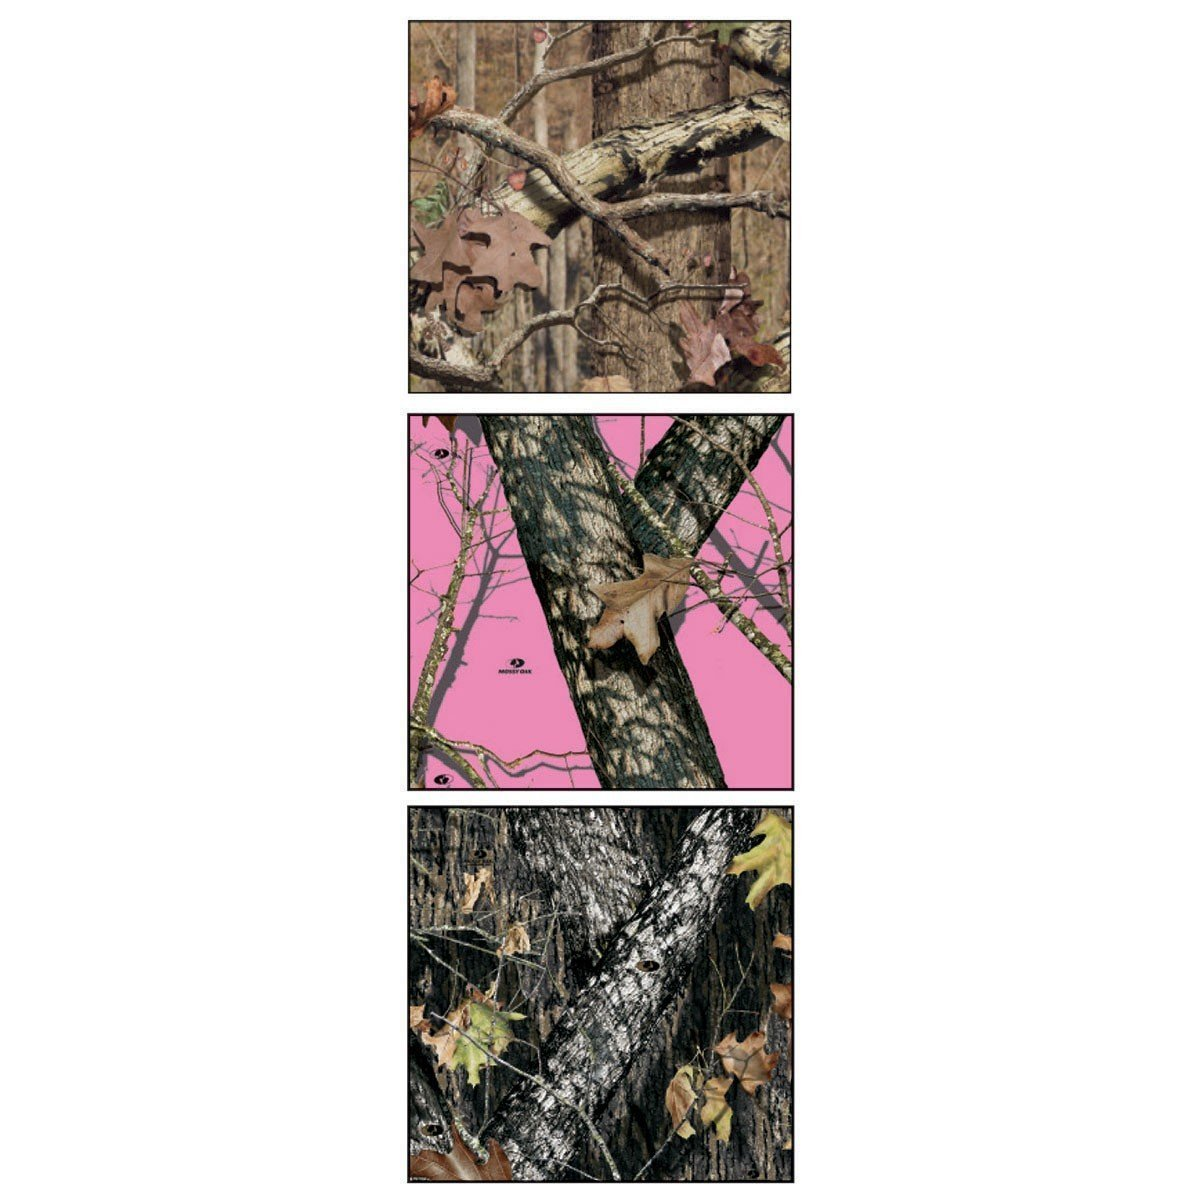 Mossy Oak Gift Boxes Green Camo 3 pack